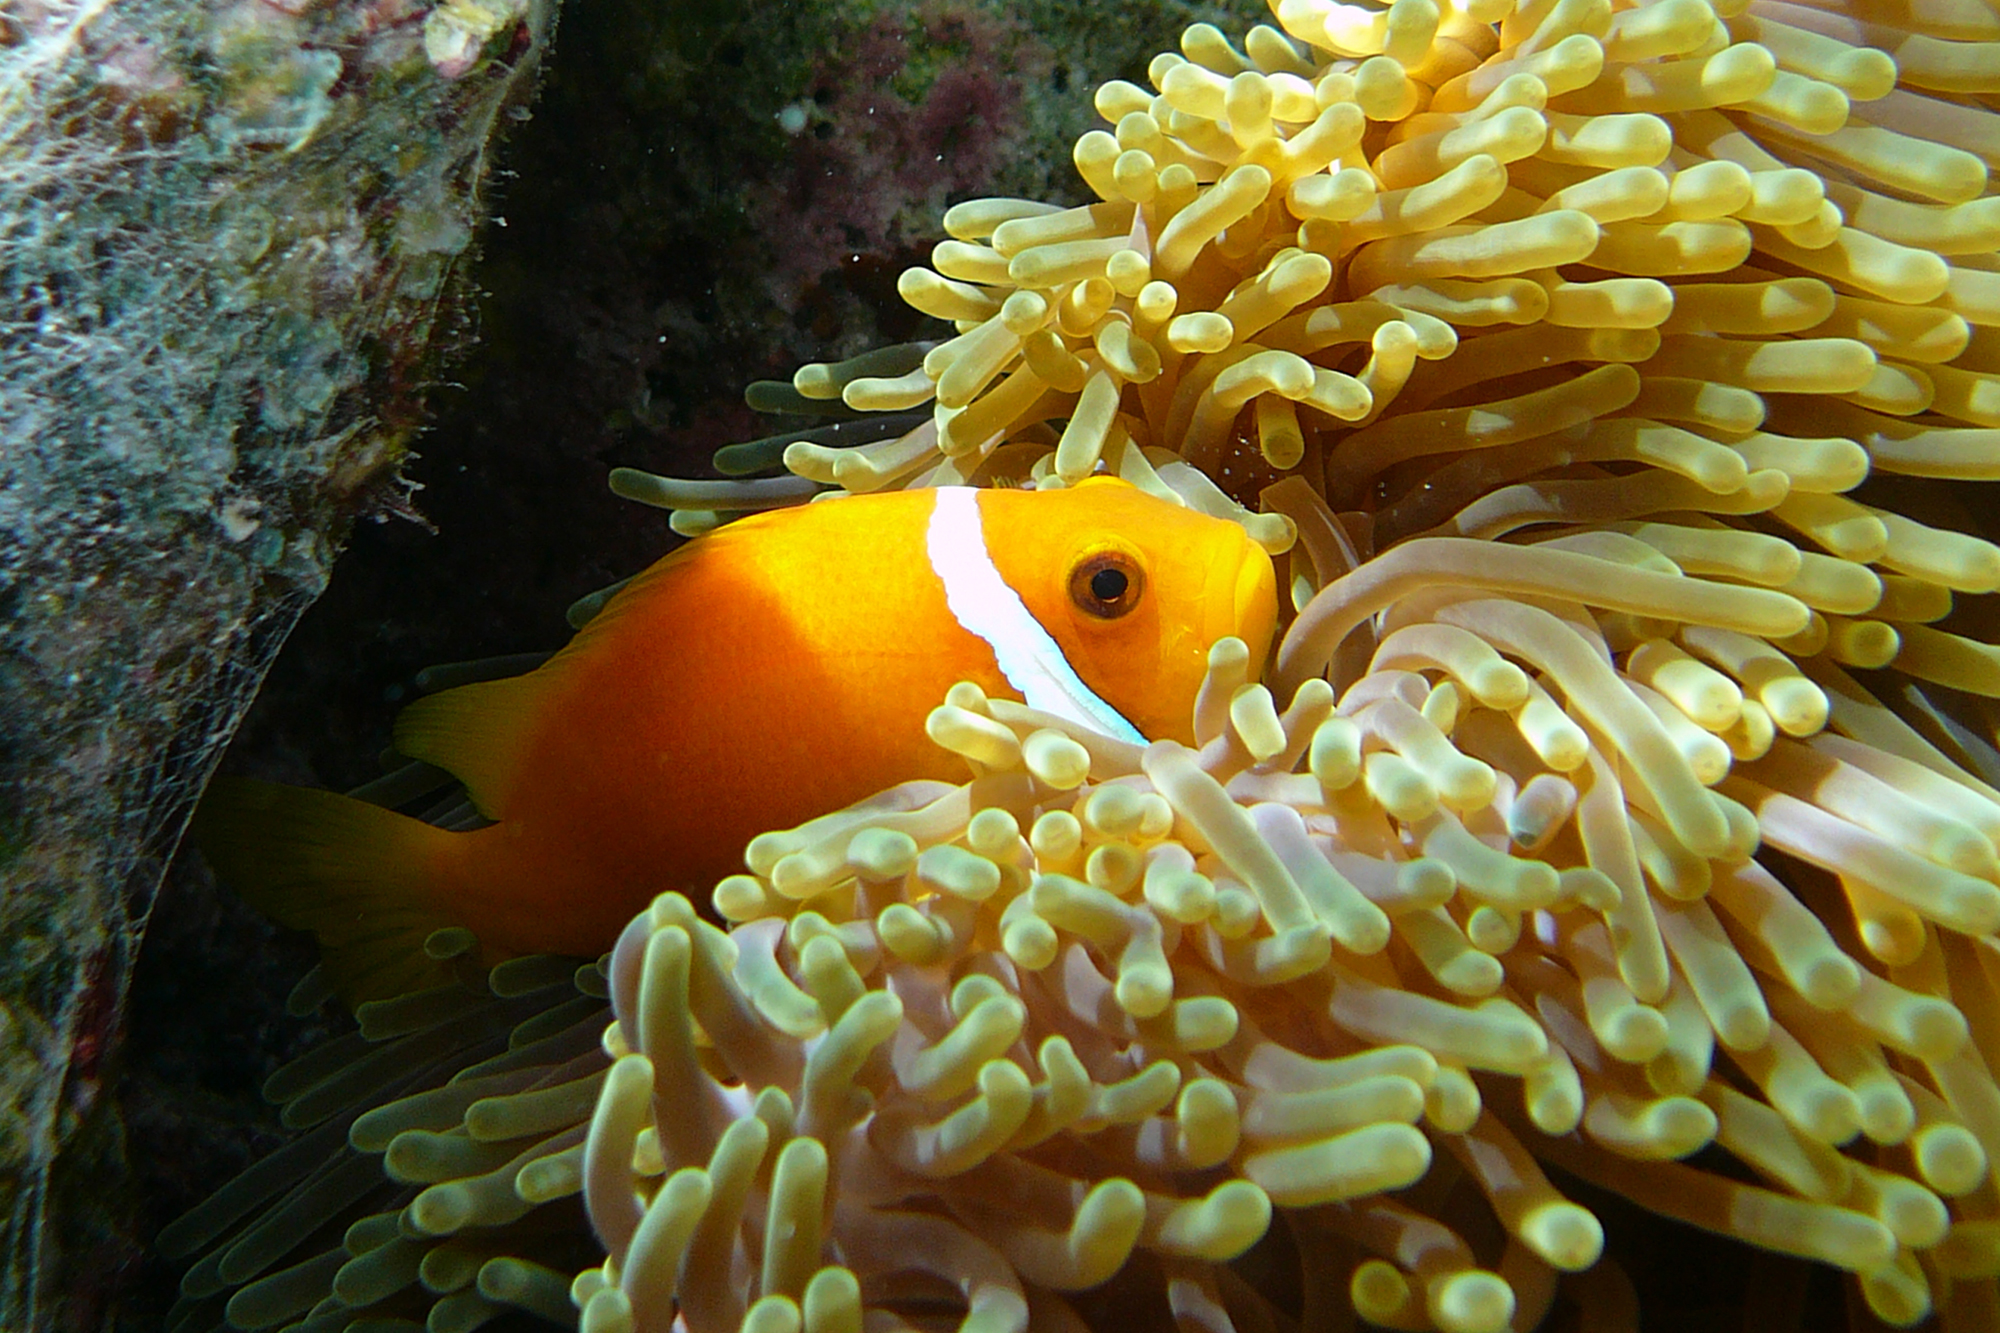 MALDIVE ANEMONEFISH (Amphiprion nigripes)